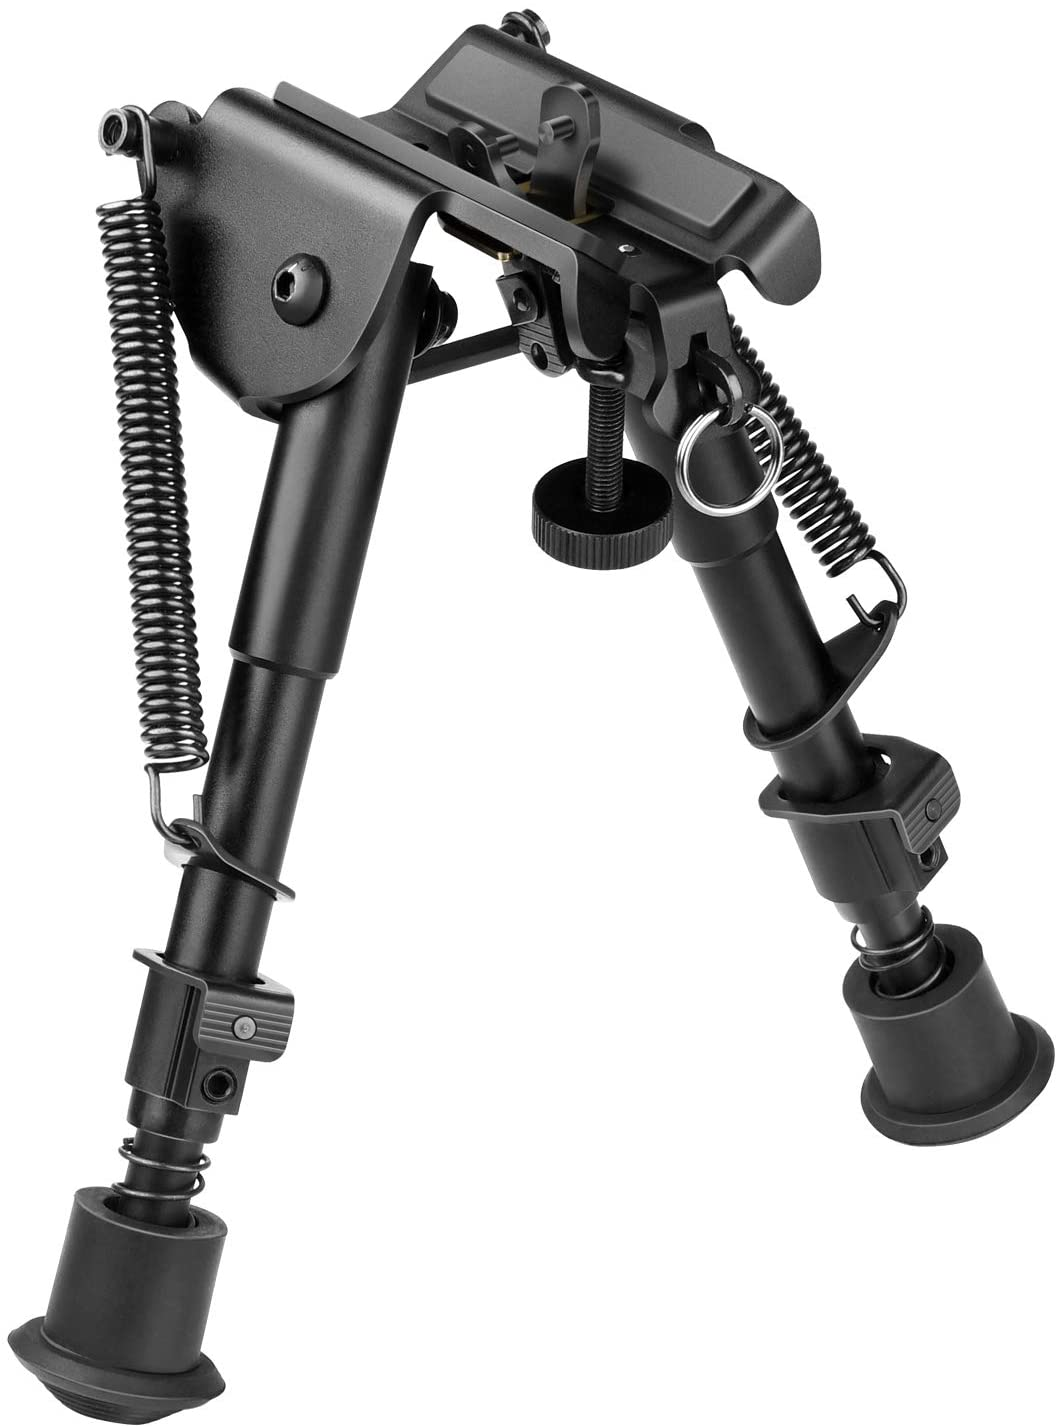 Best Hunting Bipods For Rifle 2021 Reviews 4